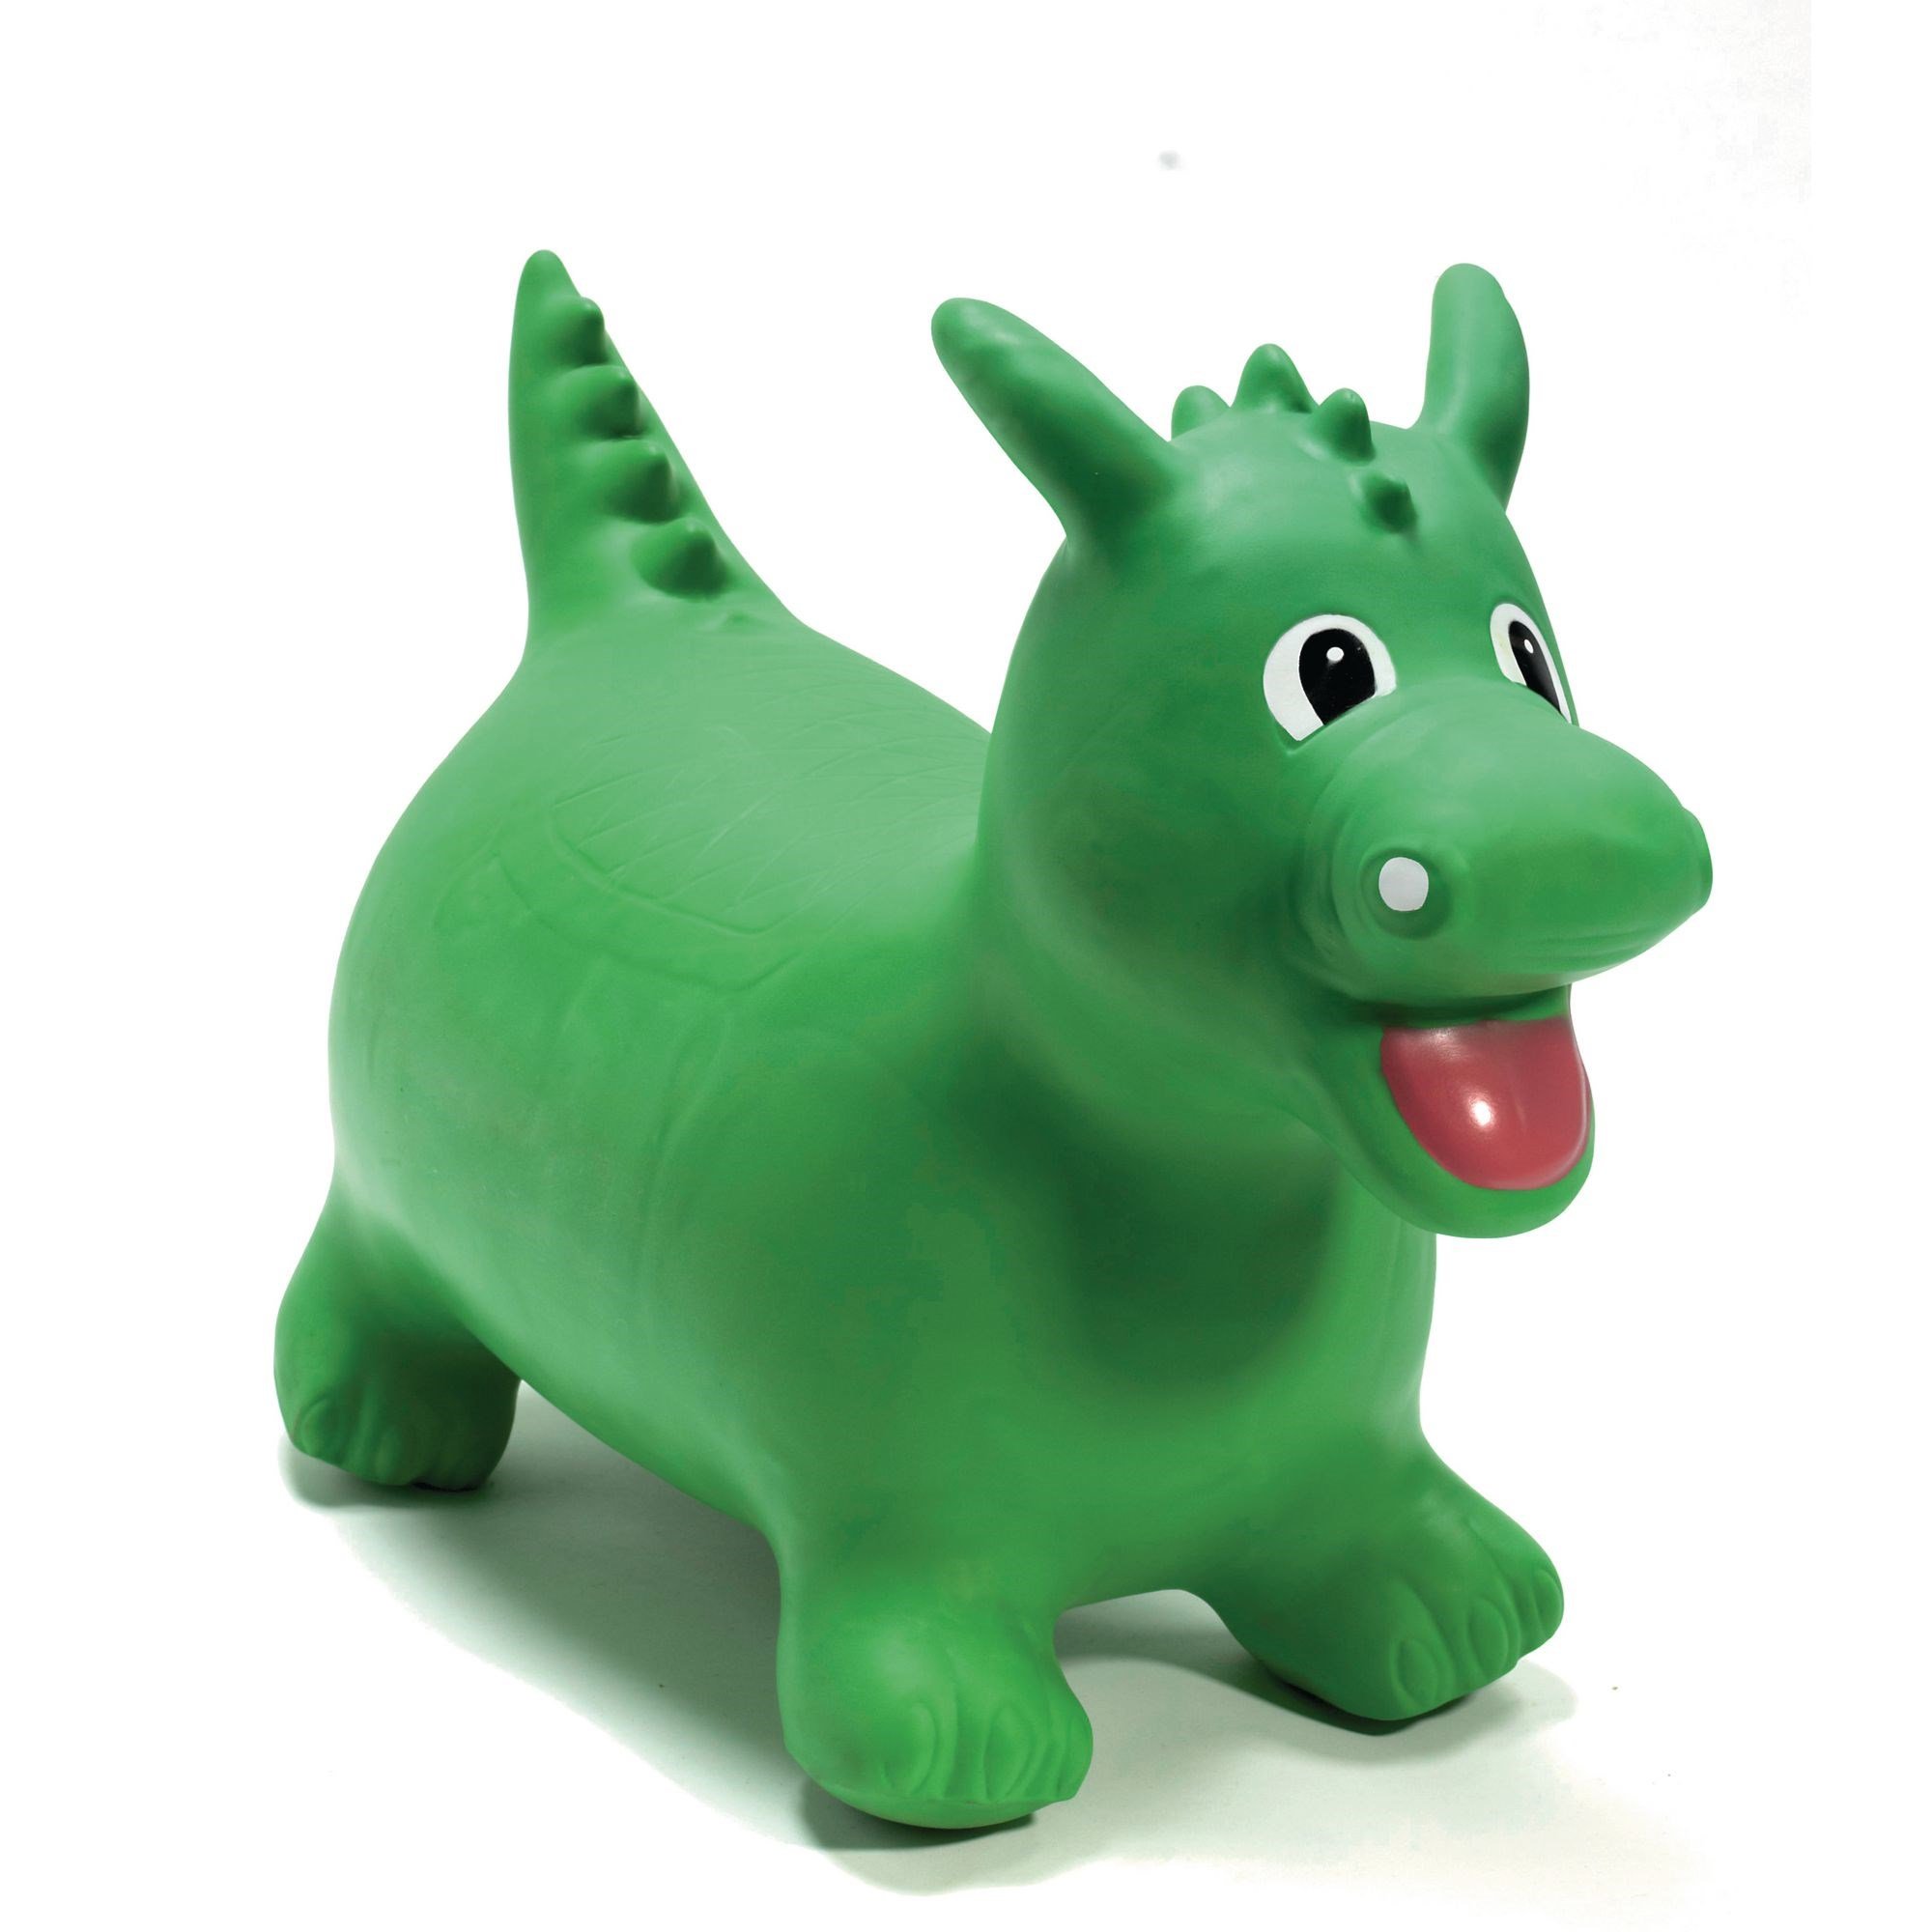 HappyHopperz Green Dino